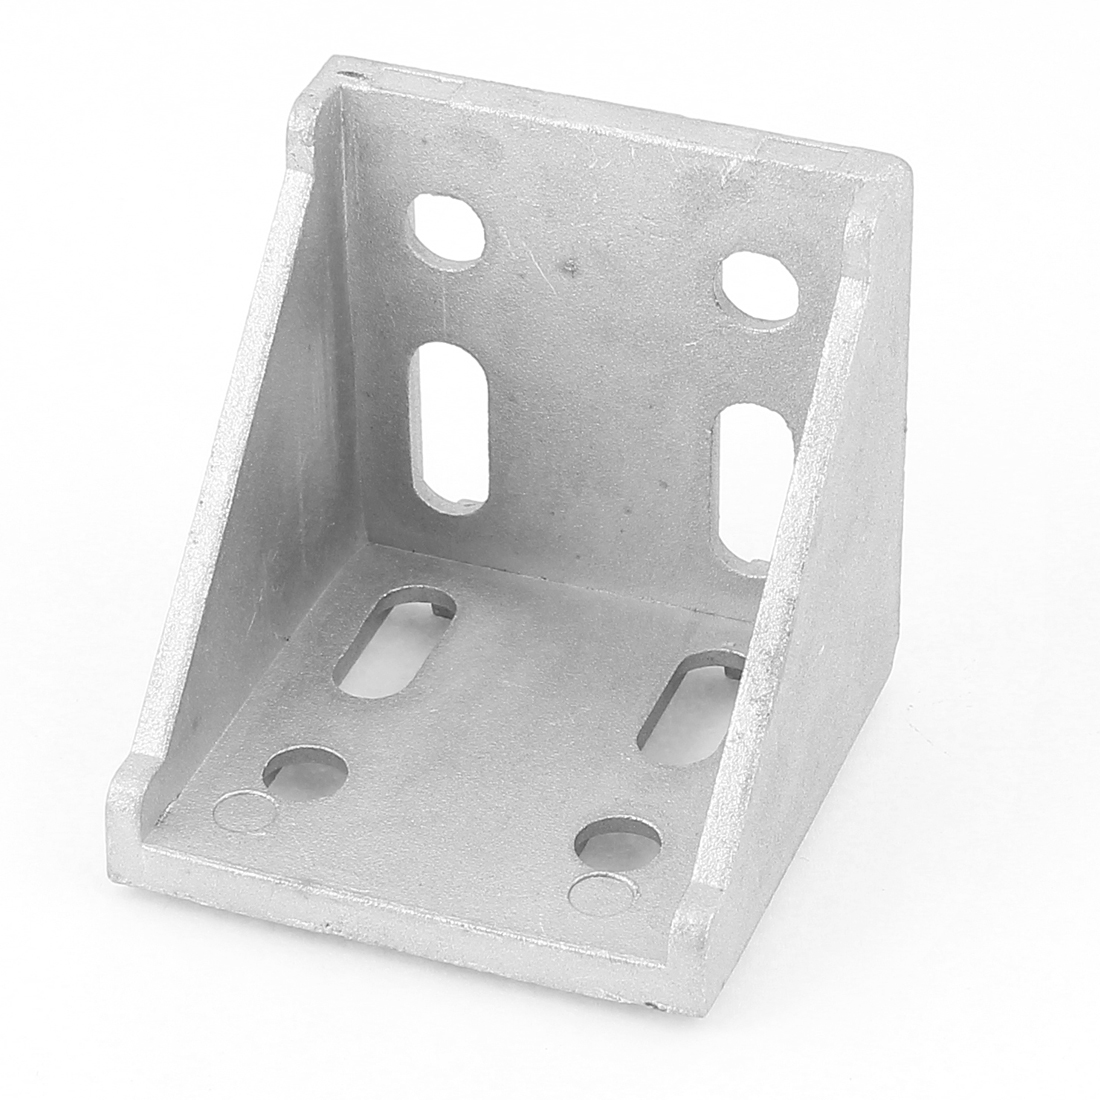 Aluminum Alloy Jointer Corner Brace Angle Bracket Support 58mm x 58mm x 59mm